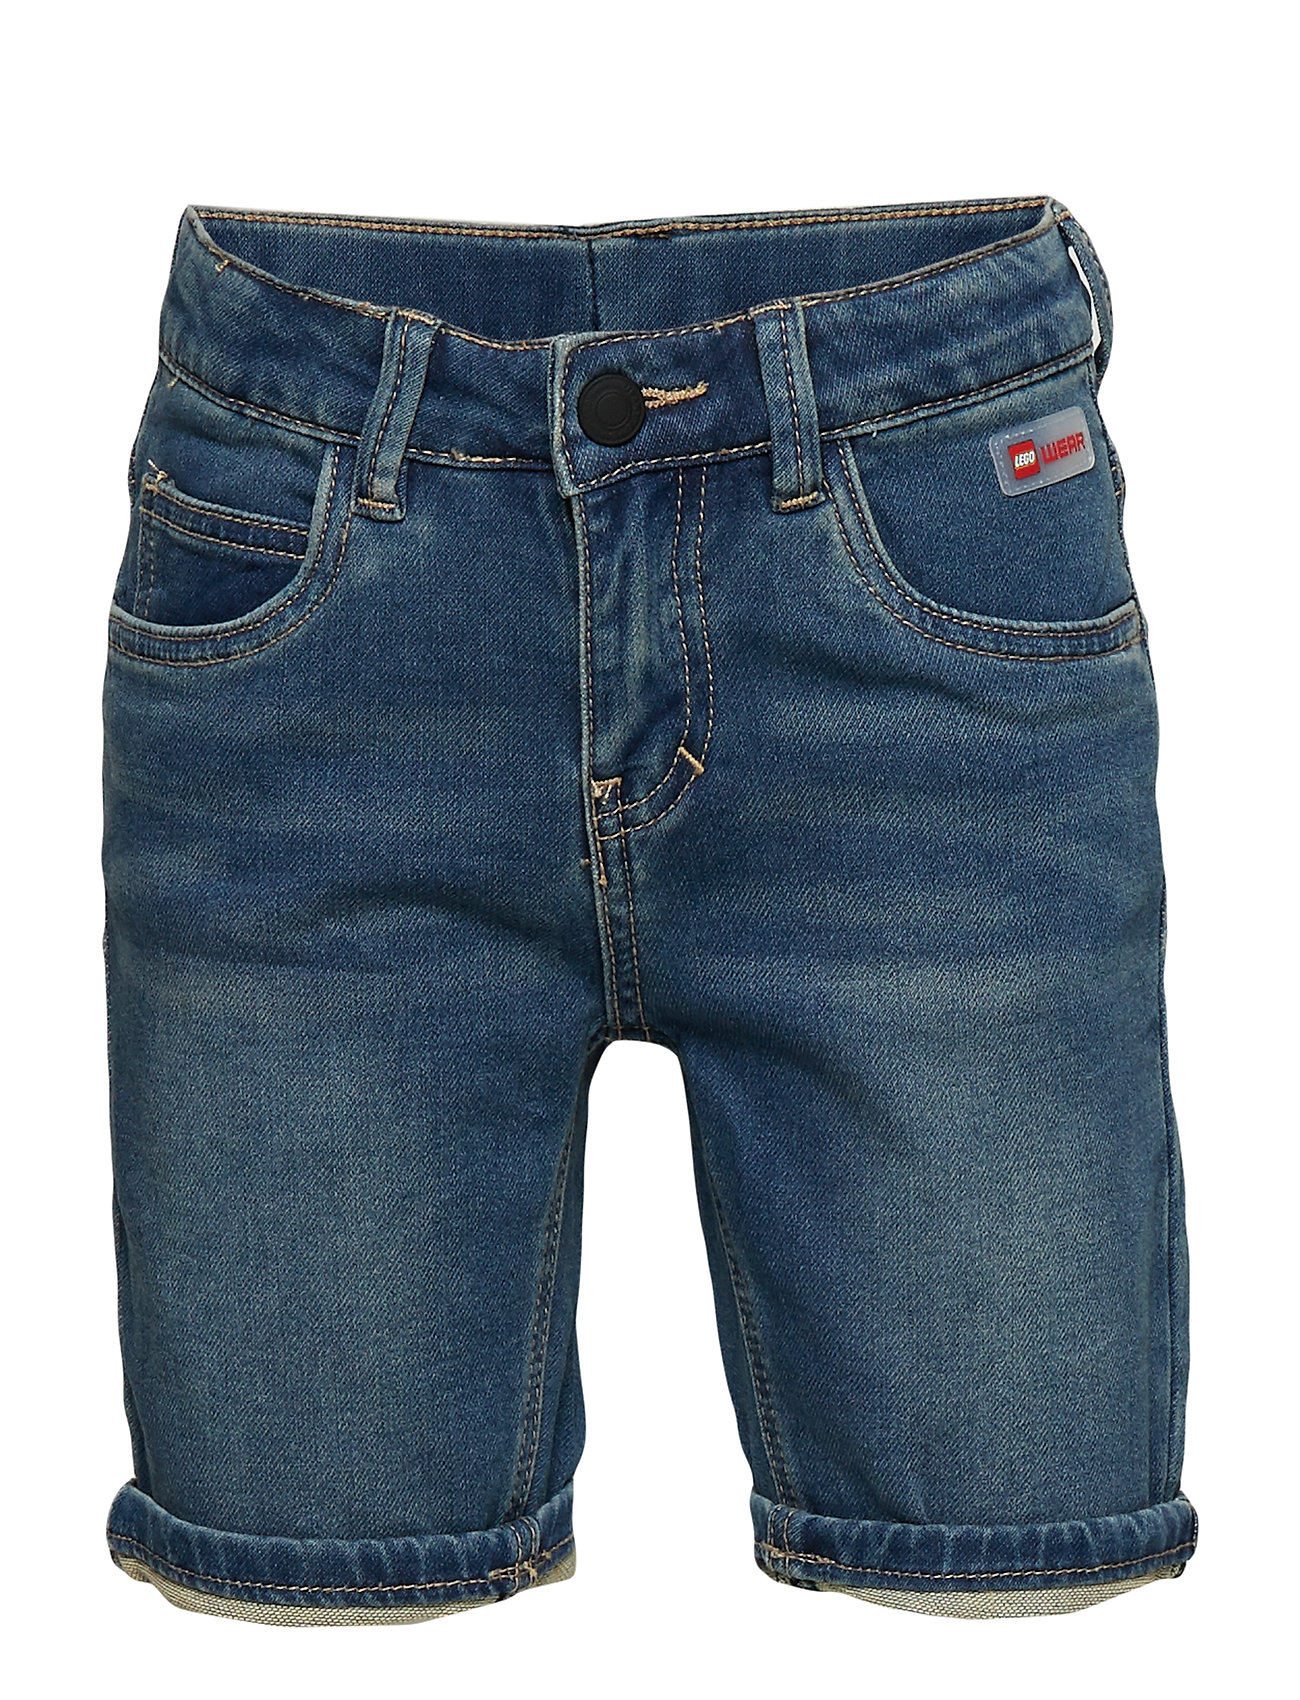 Lego wear PLATON 326 - SHORTS - DENIM